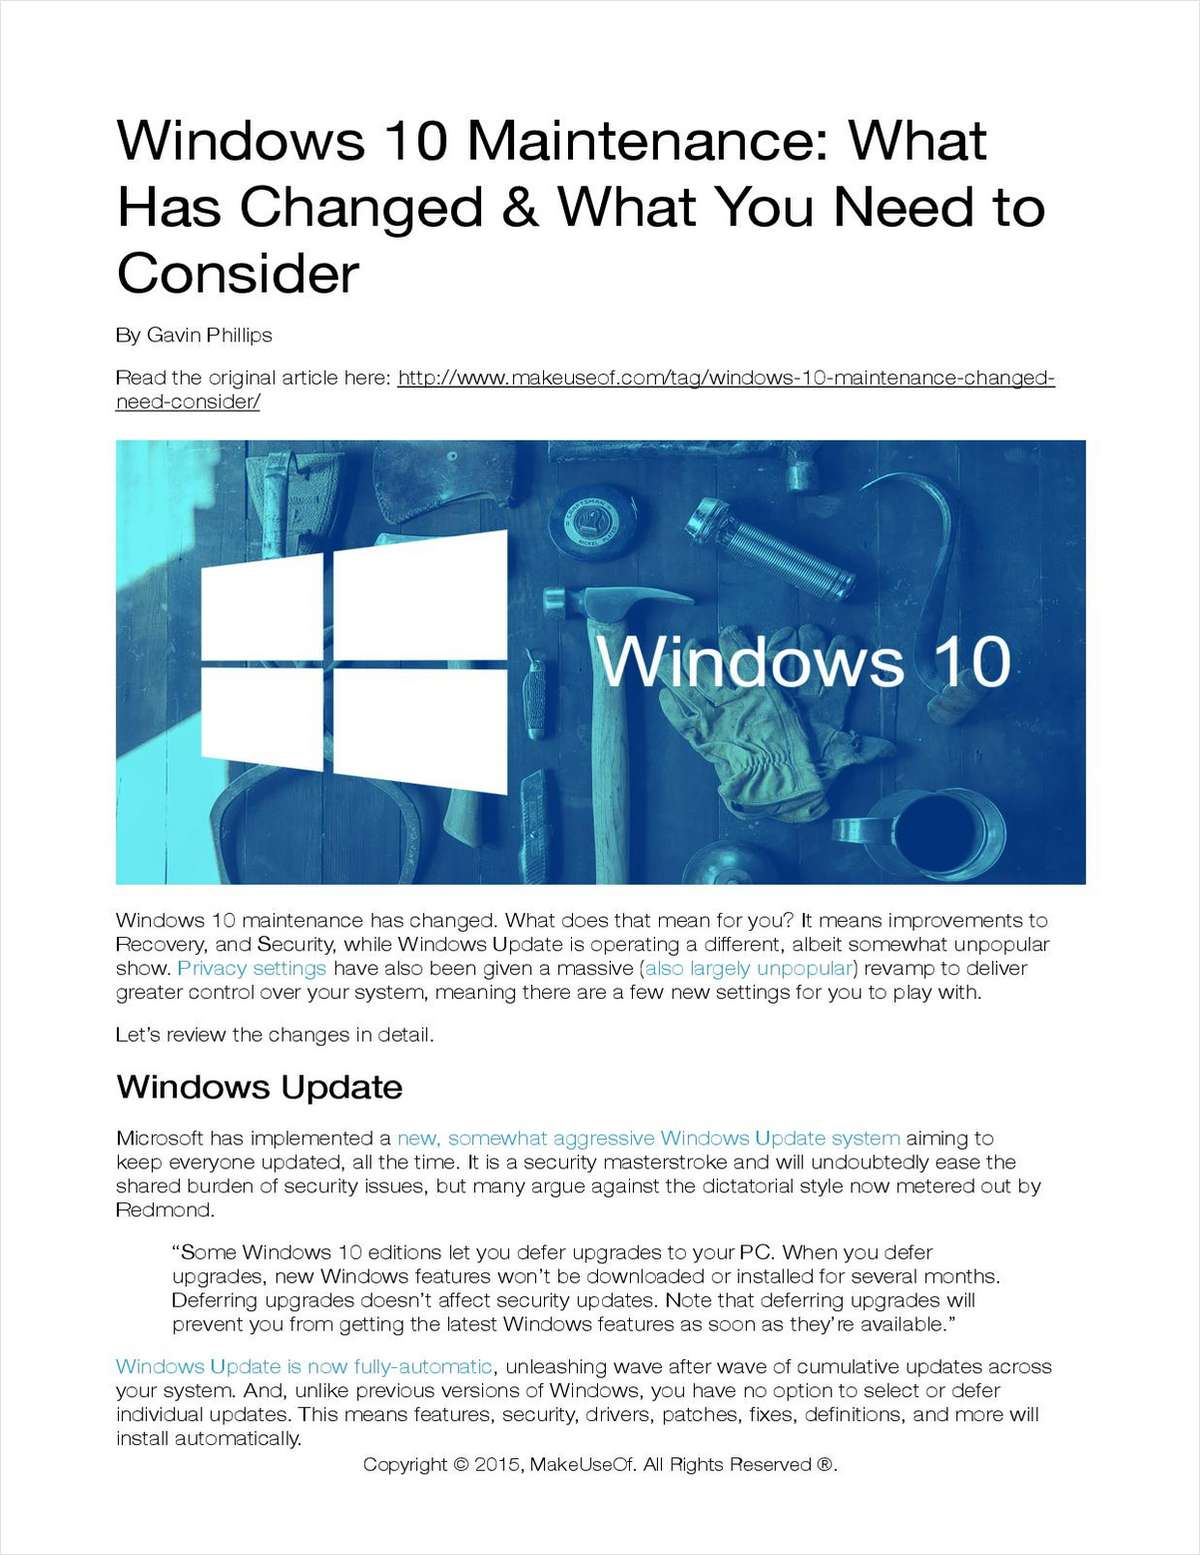 Windows 10 Maintenance: What Has Changed and What You Need to Consider